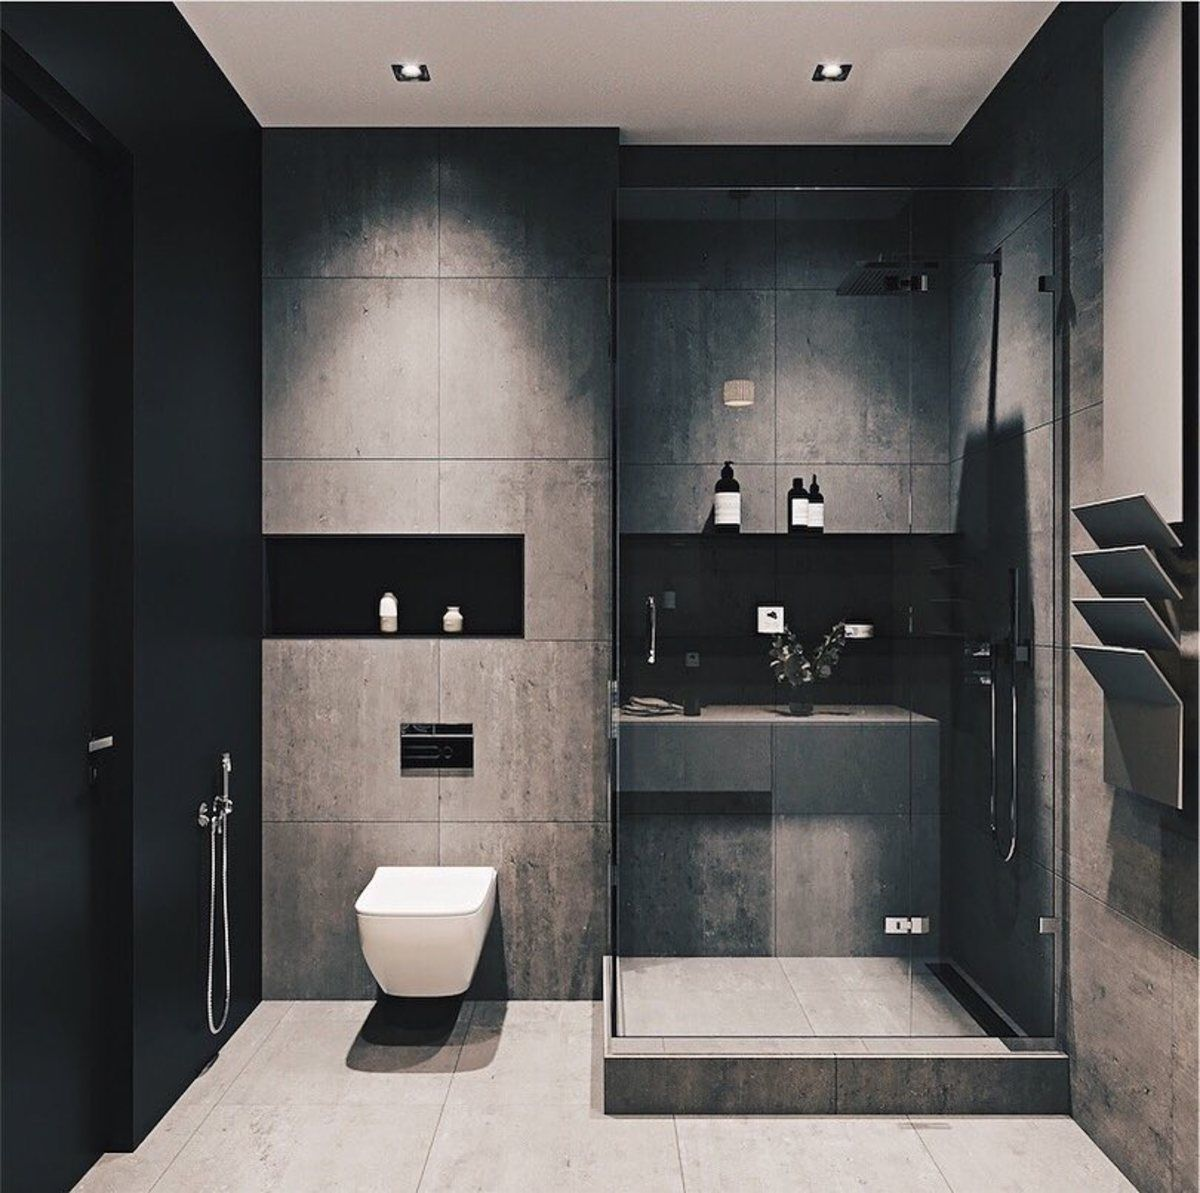 bathroom design modern inspiring house | Random Inspiration 336 | Bathroom, Bathroom design small ...